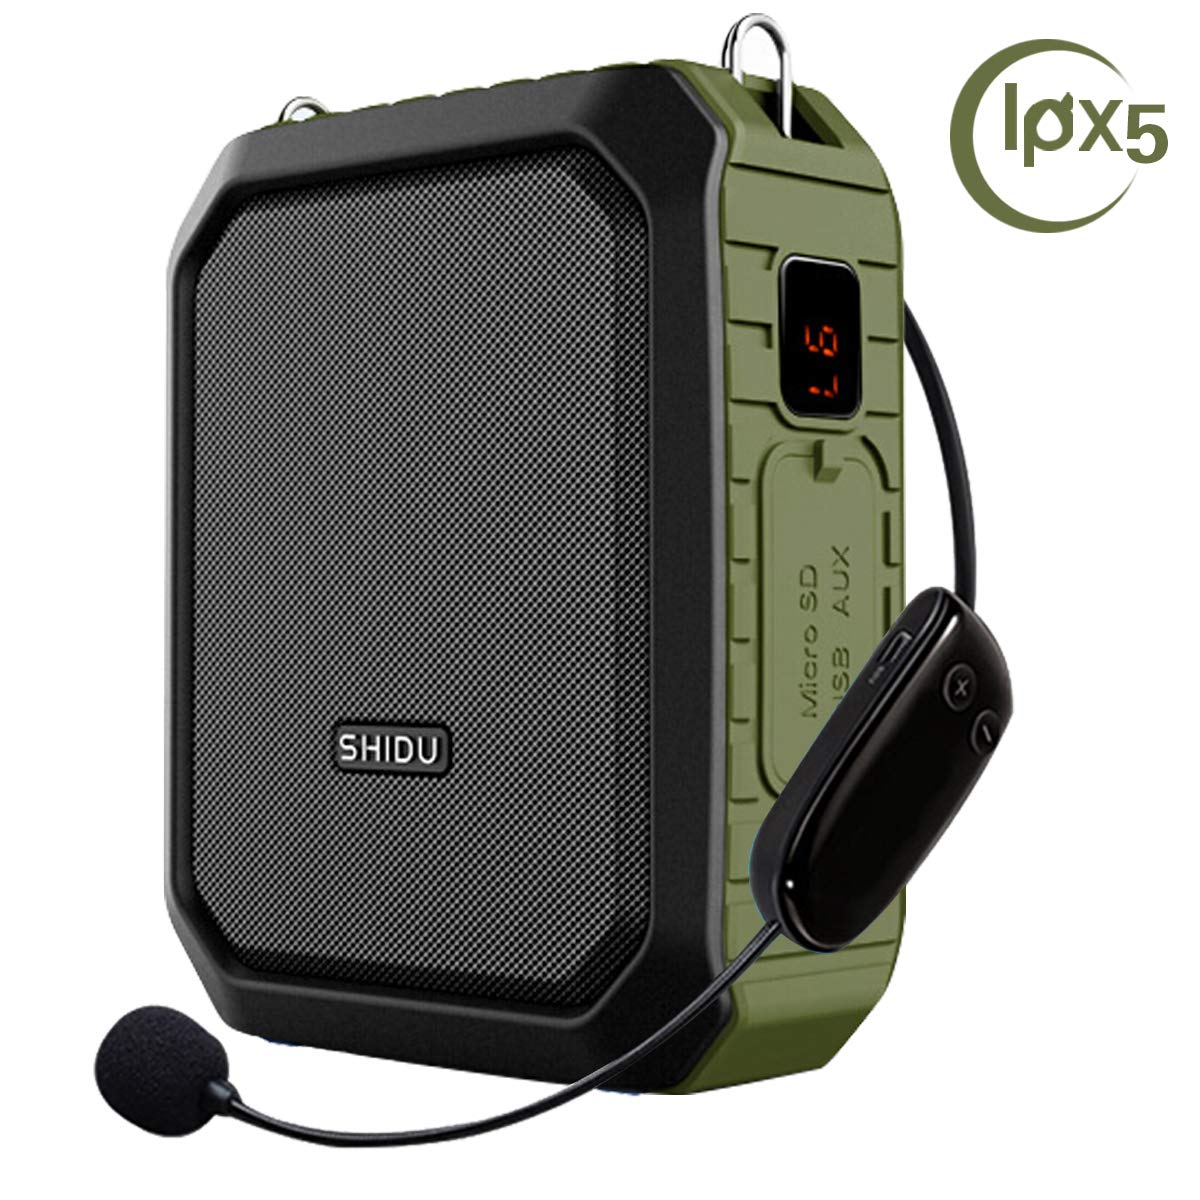 Wireless Voice Amplifier with Headset Mic 18W Voice Loudspeaker Portable Bluetooth Speaker Waterproof IPX5 Power Bank for Outdoor Activities, Shower, Teachers, Presenter, Salesman etc by EnHong Technology